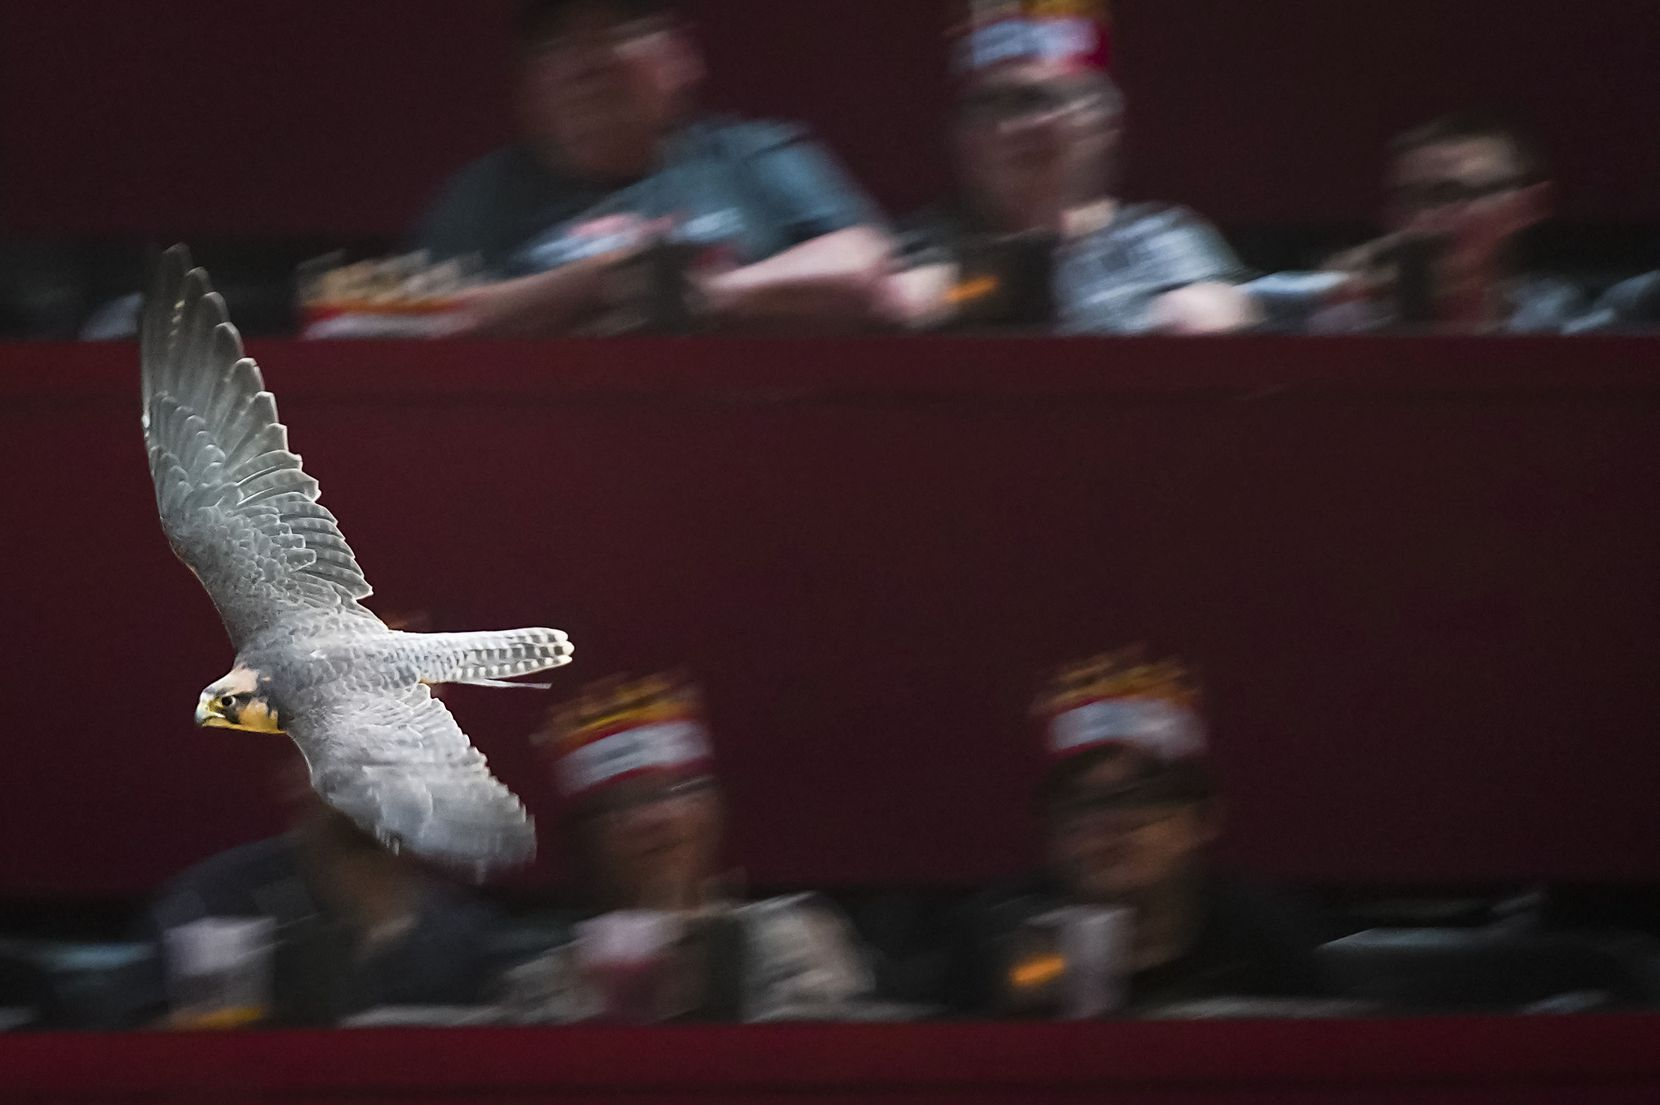 A falcon flies over the crowd during a dinner show at Medieval Times in Dallas. The company employs two falcons.